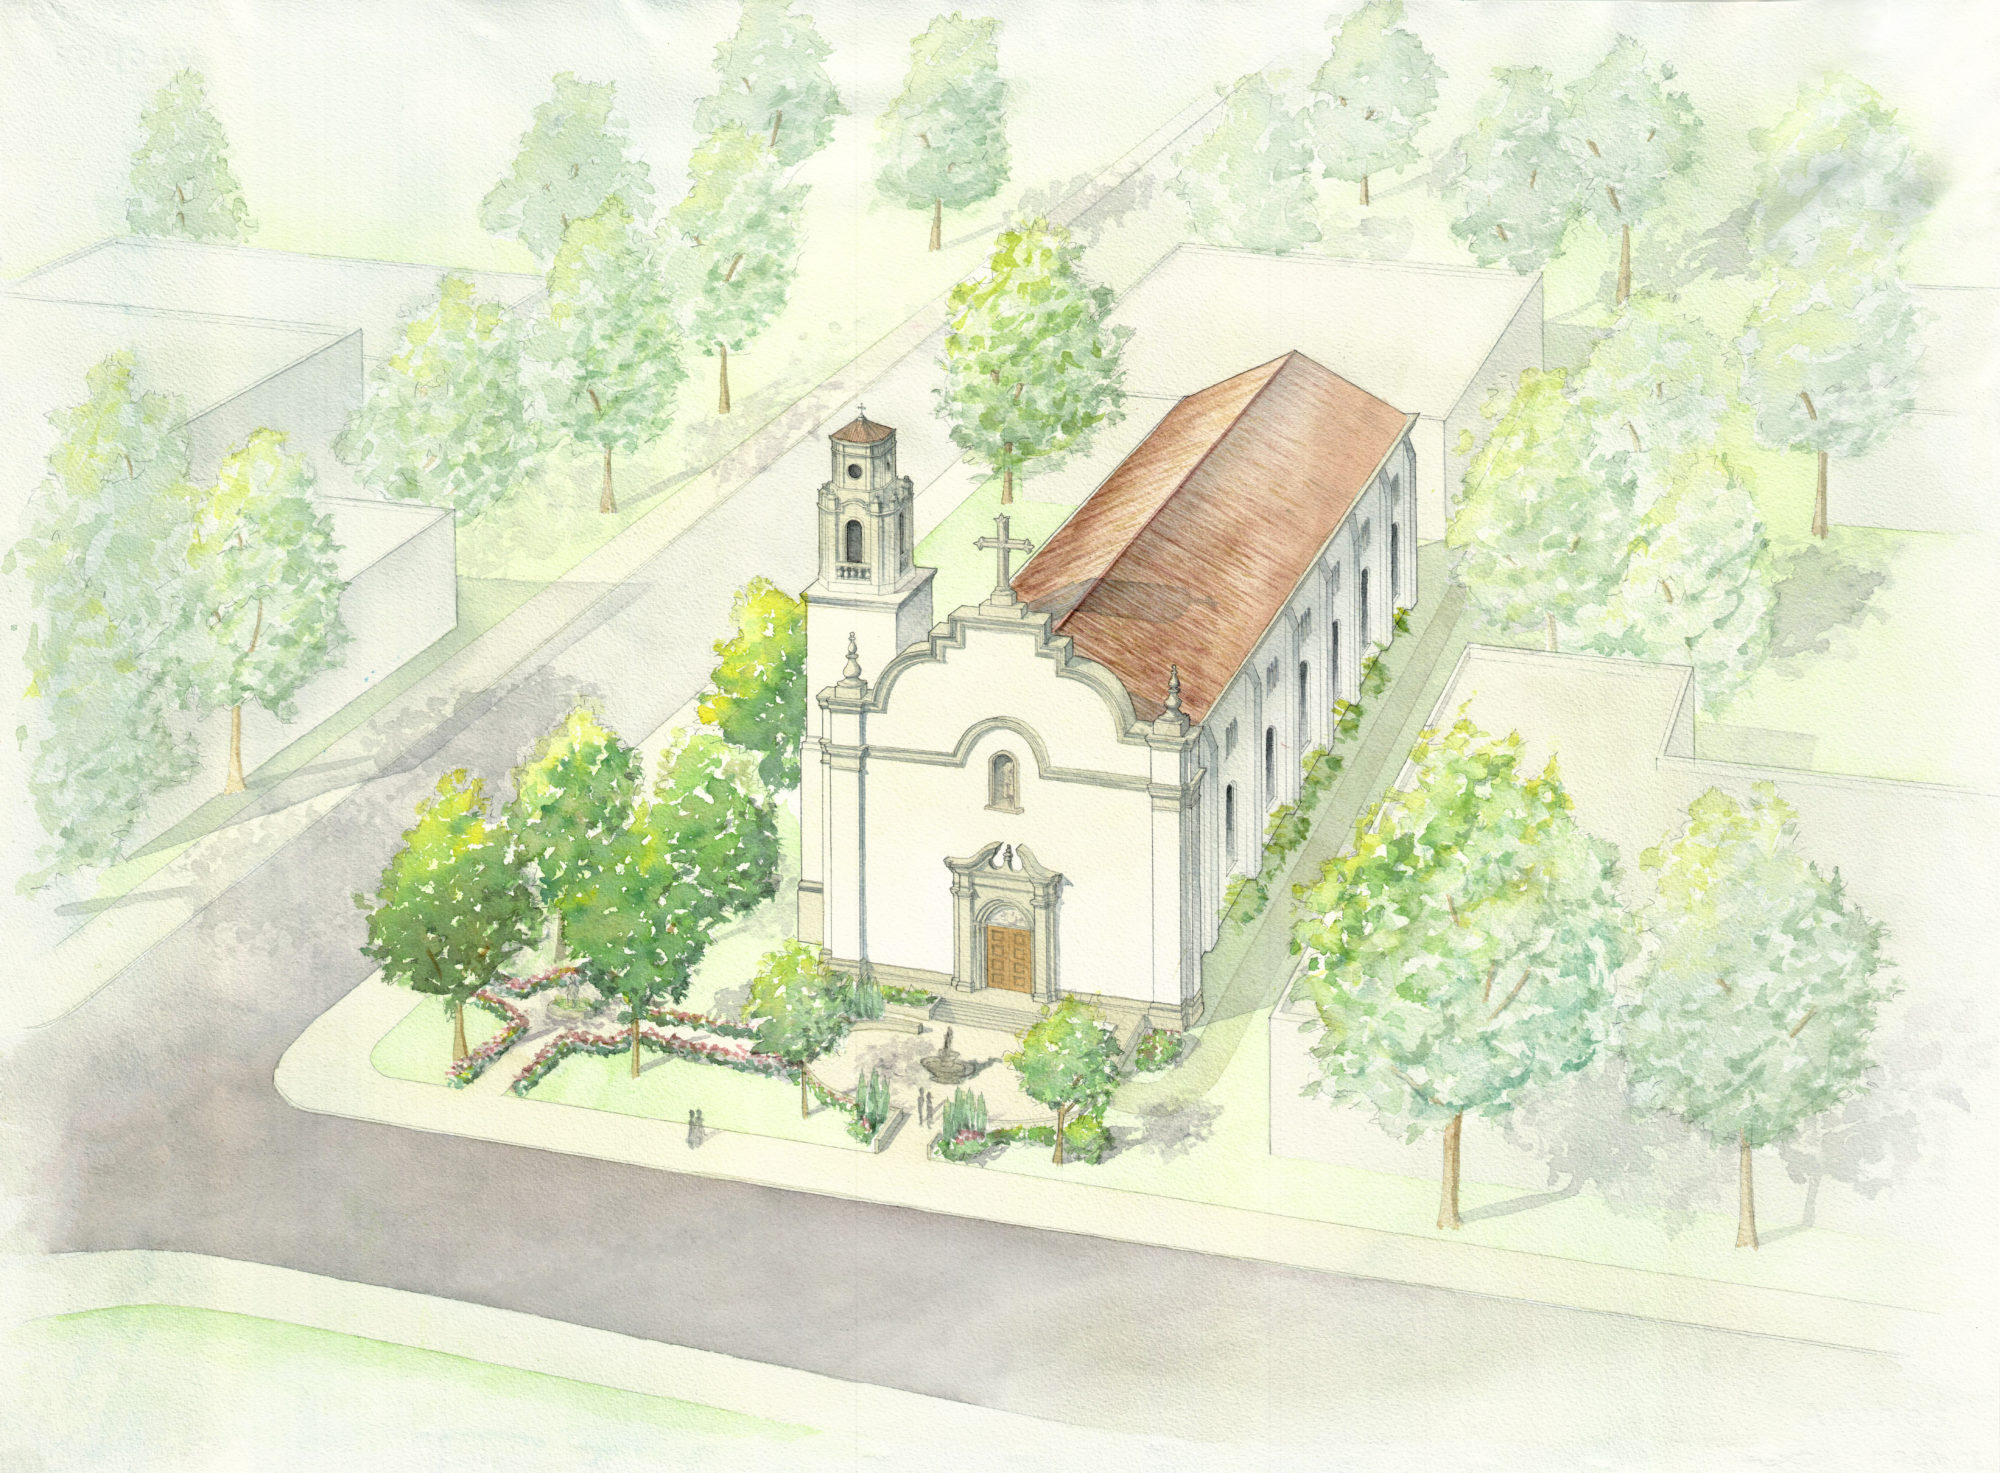 Adobe terra cotta tile mission church watercolor rendering Spanish revival bell tower limestone details by Harrison Design